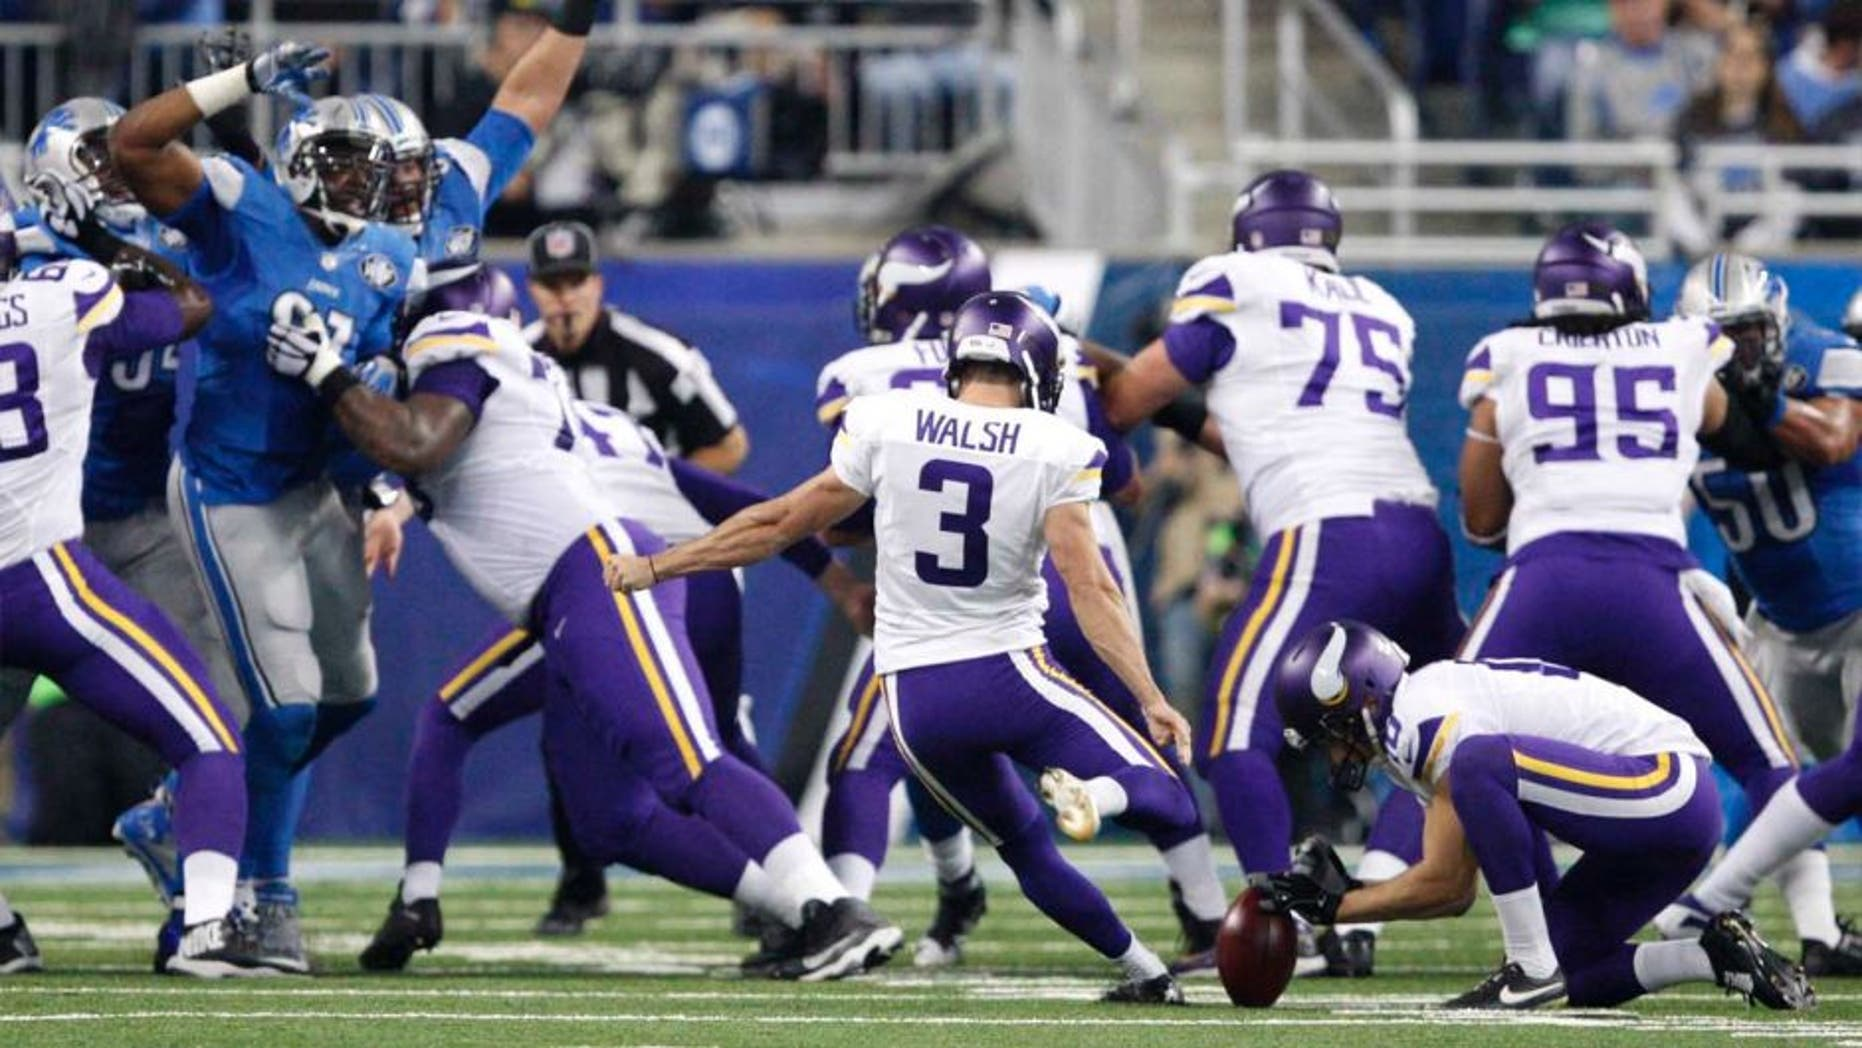 Minnesota Vikings kicker Blair Walsh kicks a field goal during the first quarter against the Detroit Lions at Ford Field in Detroit on Sunday, Oct. 25, 2015.